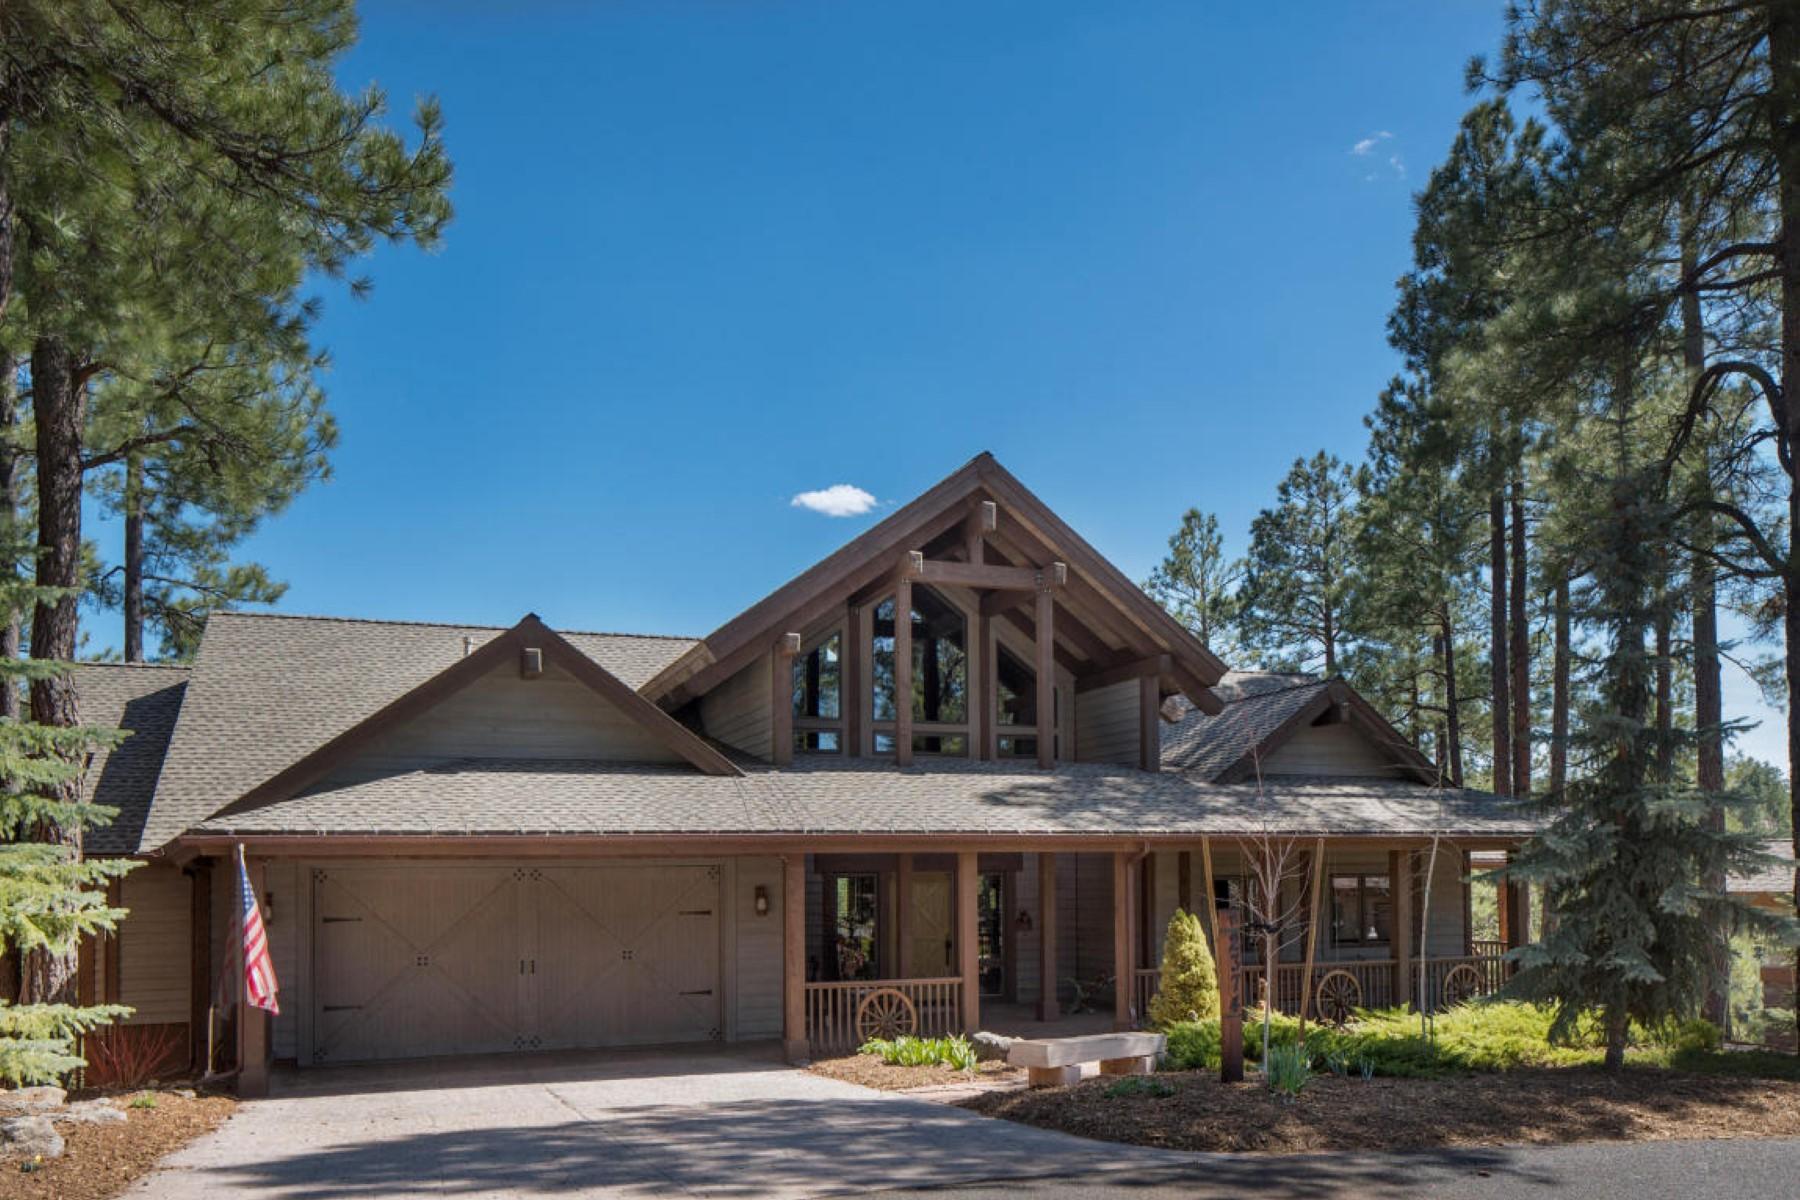 Maison unifamiliale pour l Vente à Beautiful rustic retreat sits high above the 18th fairway on a canyon rim 640-2374 Link Smith Flagstaff, Arizona, 86005 États-Unis